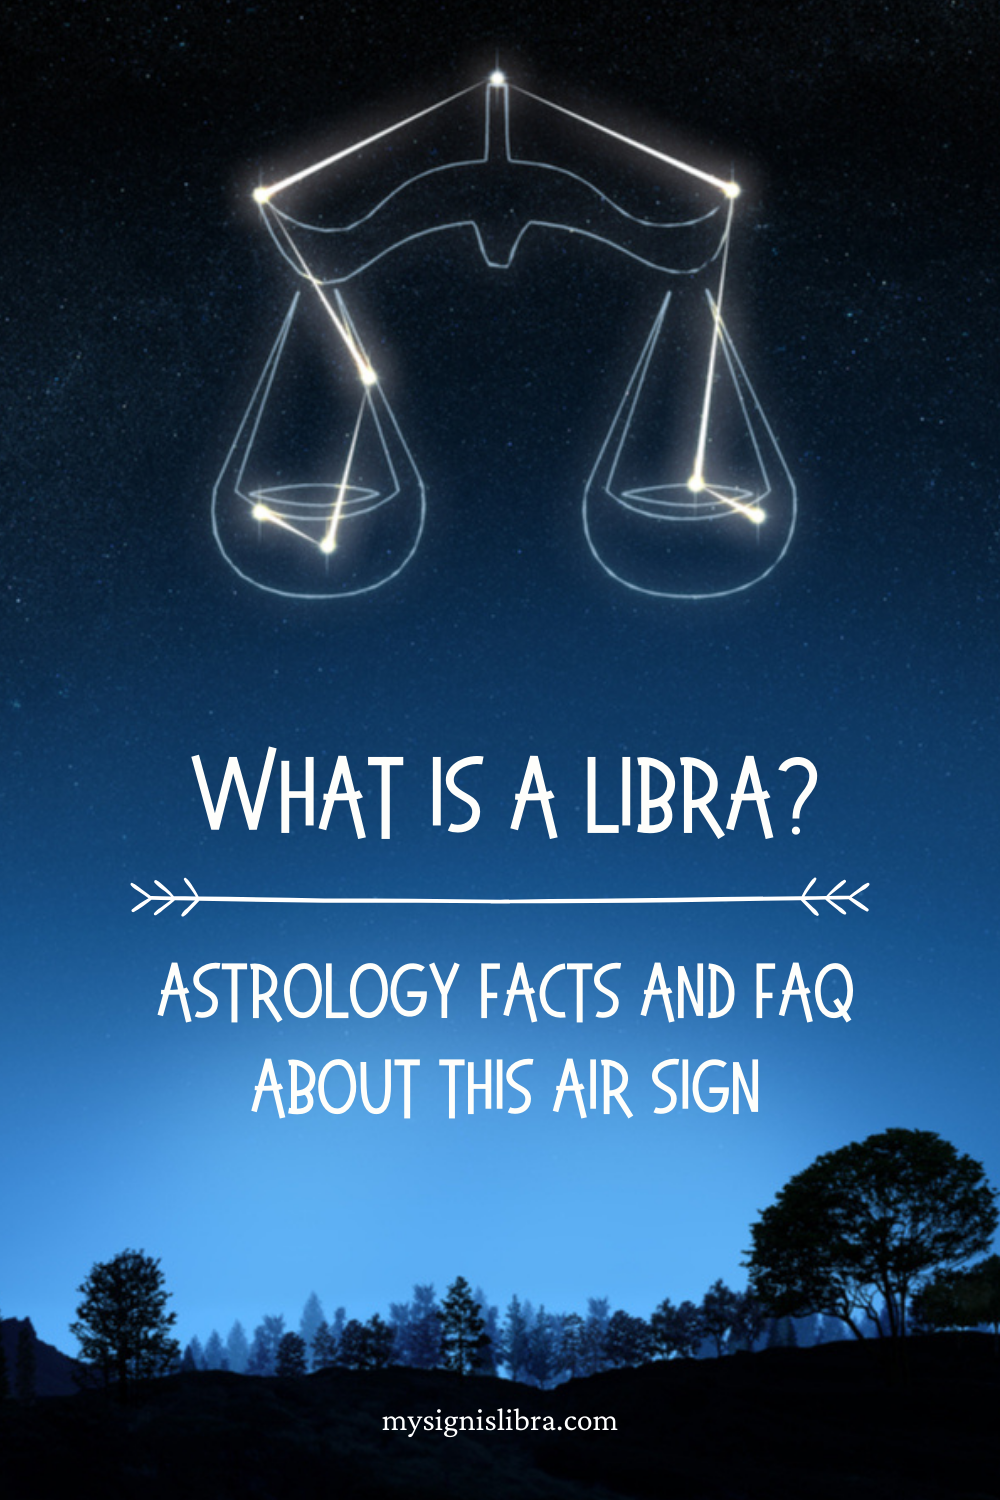 What Is A Libra_ Astrology Facts And FAQ About This Air Sign, Libra Zodiac Traits #libra #librasign #astrology #zodiac